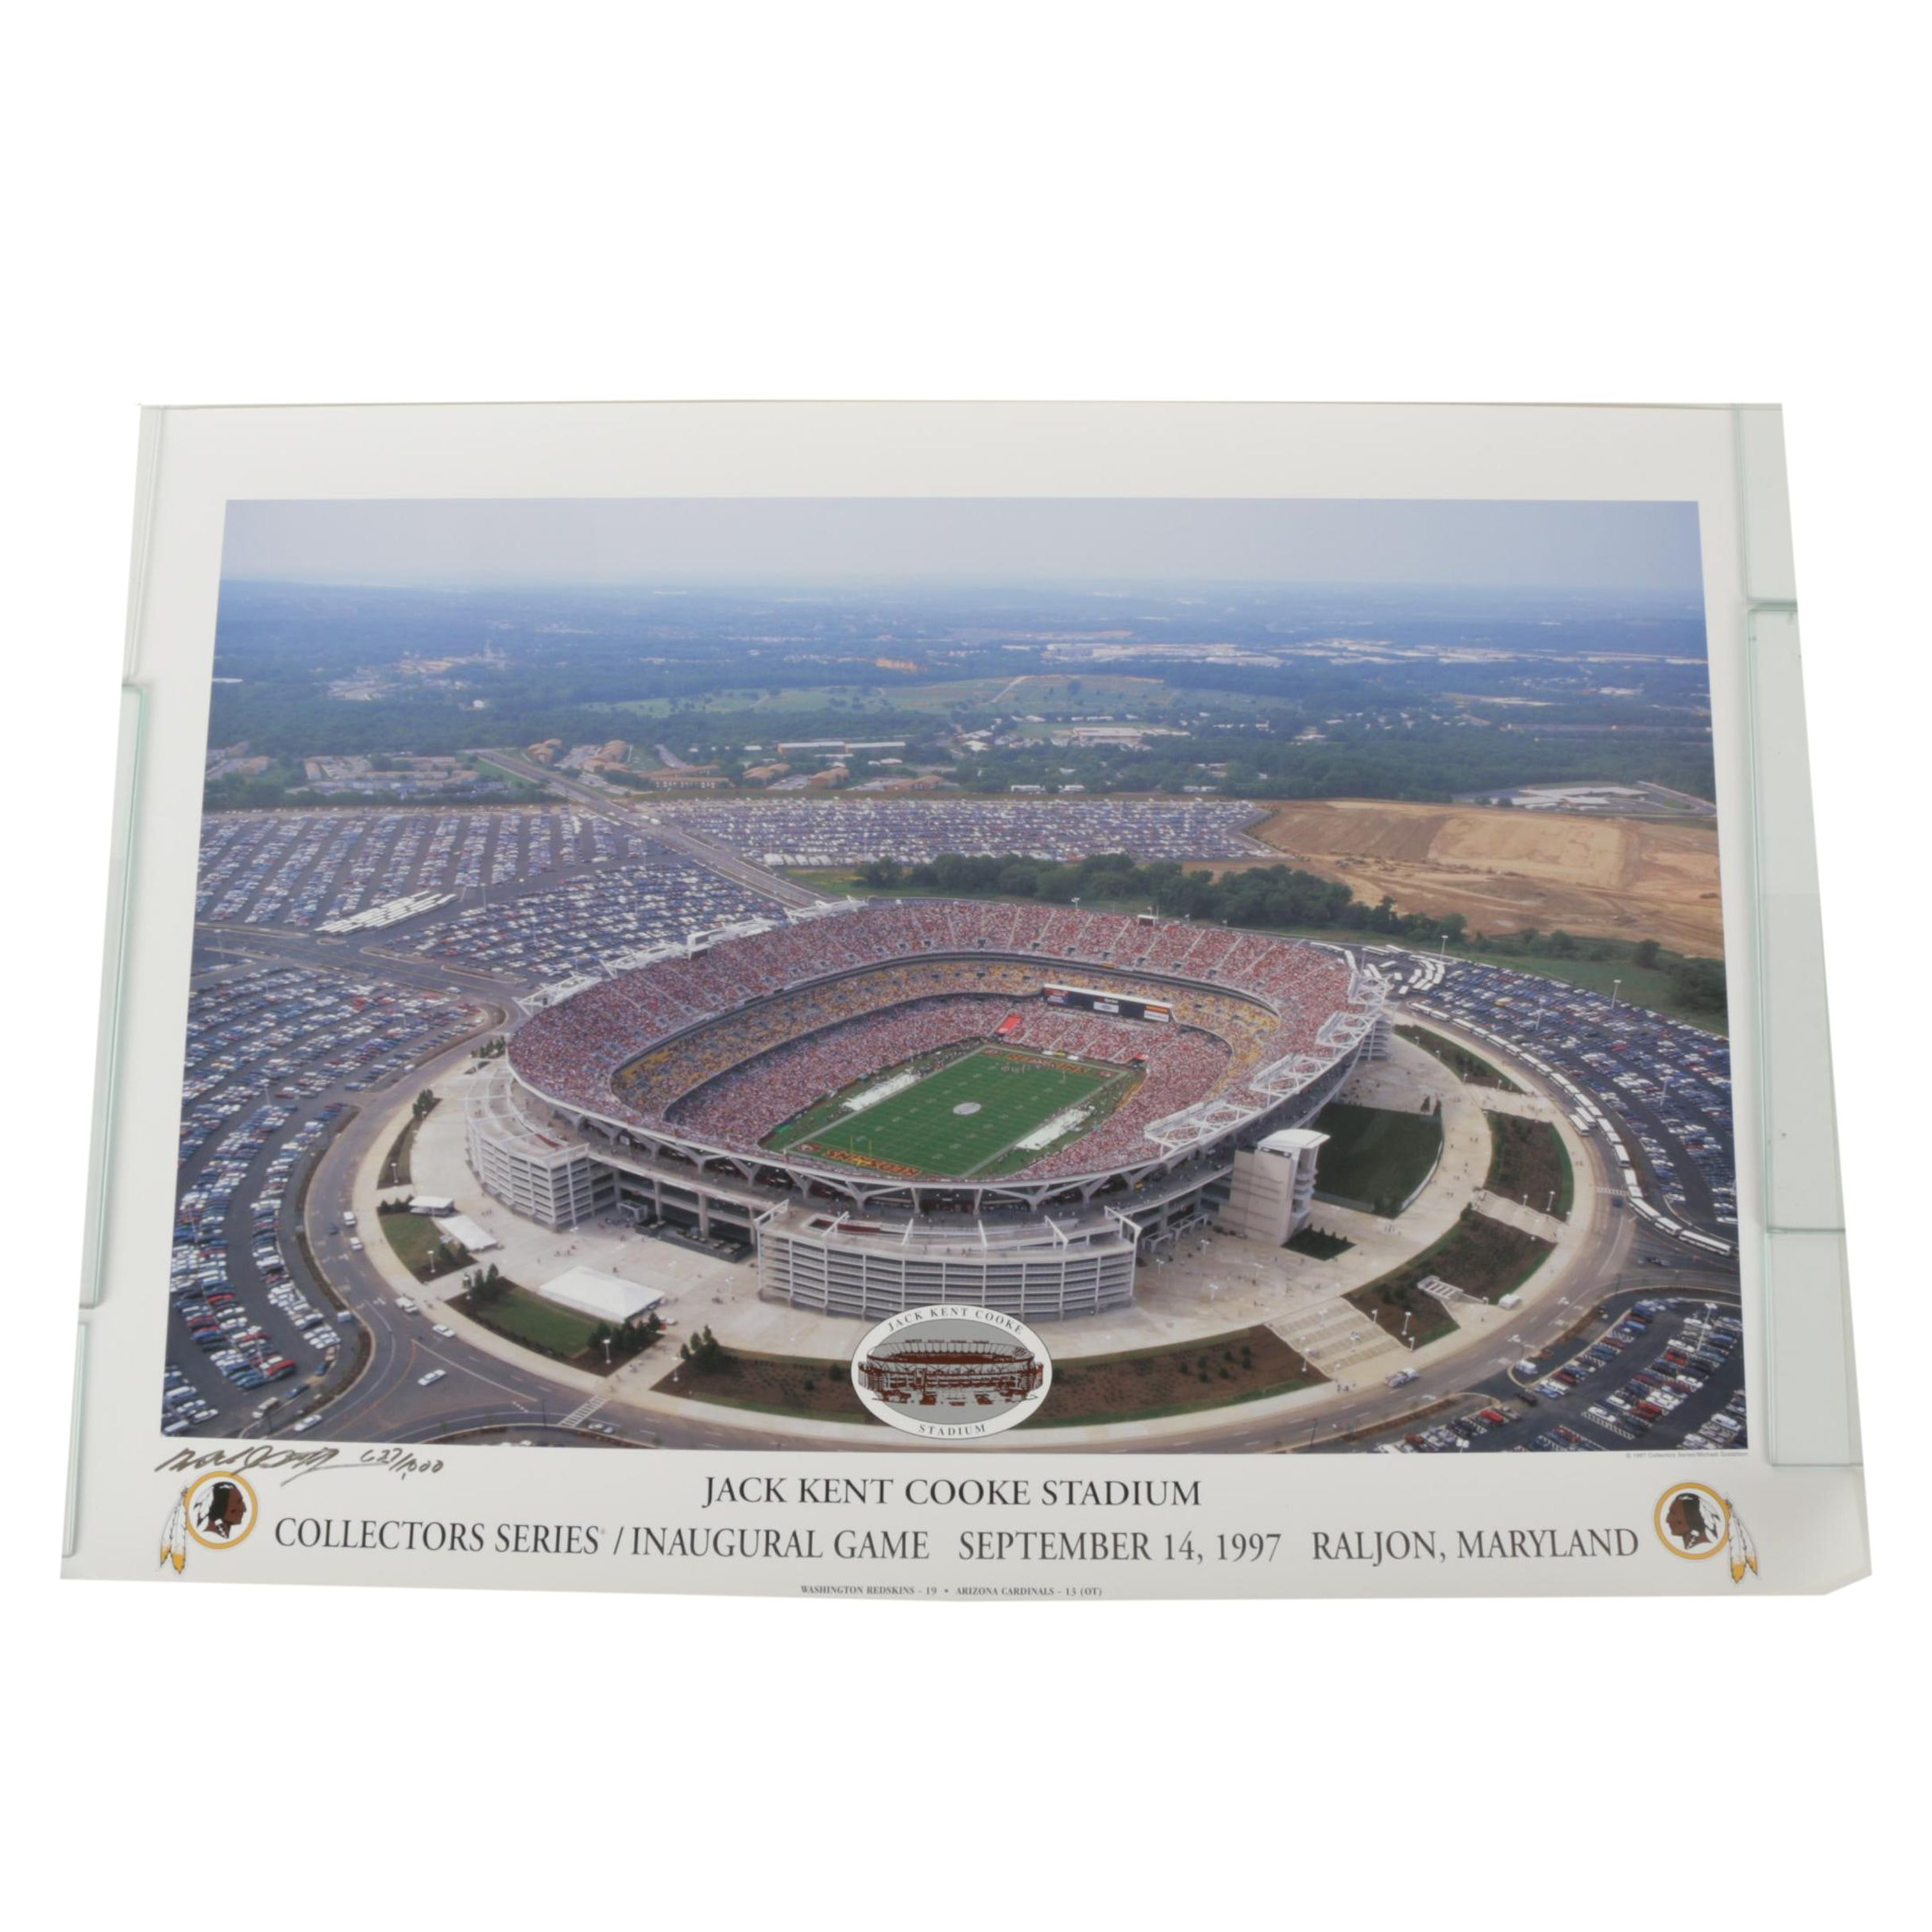 Michael Gustafson Limited Edition Offset Lithograph of Jack Kent Cooke Stadium